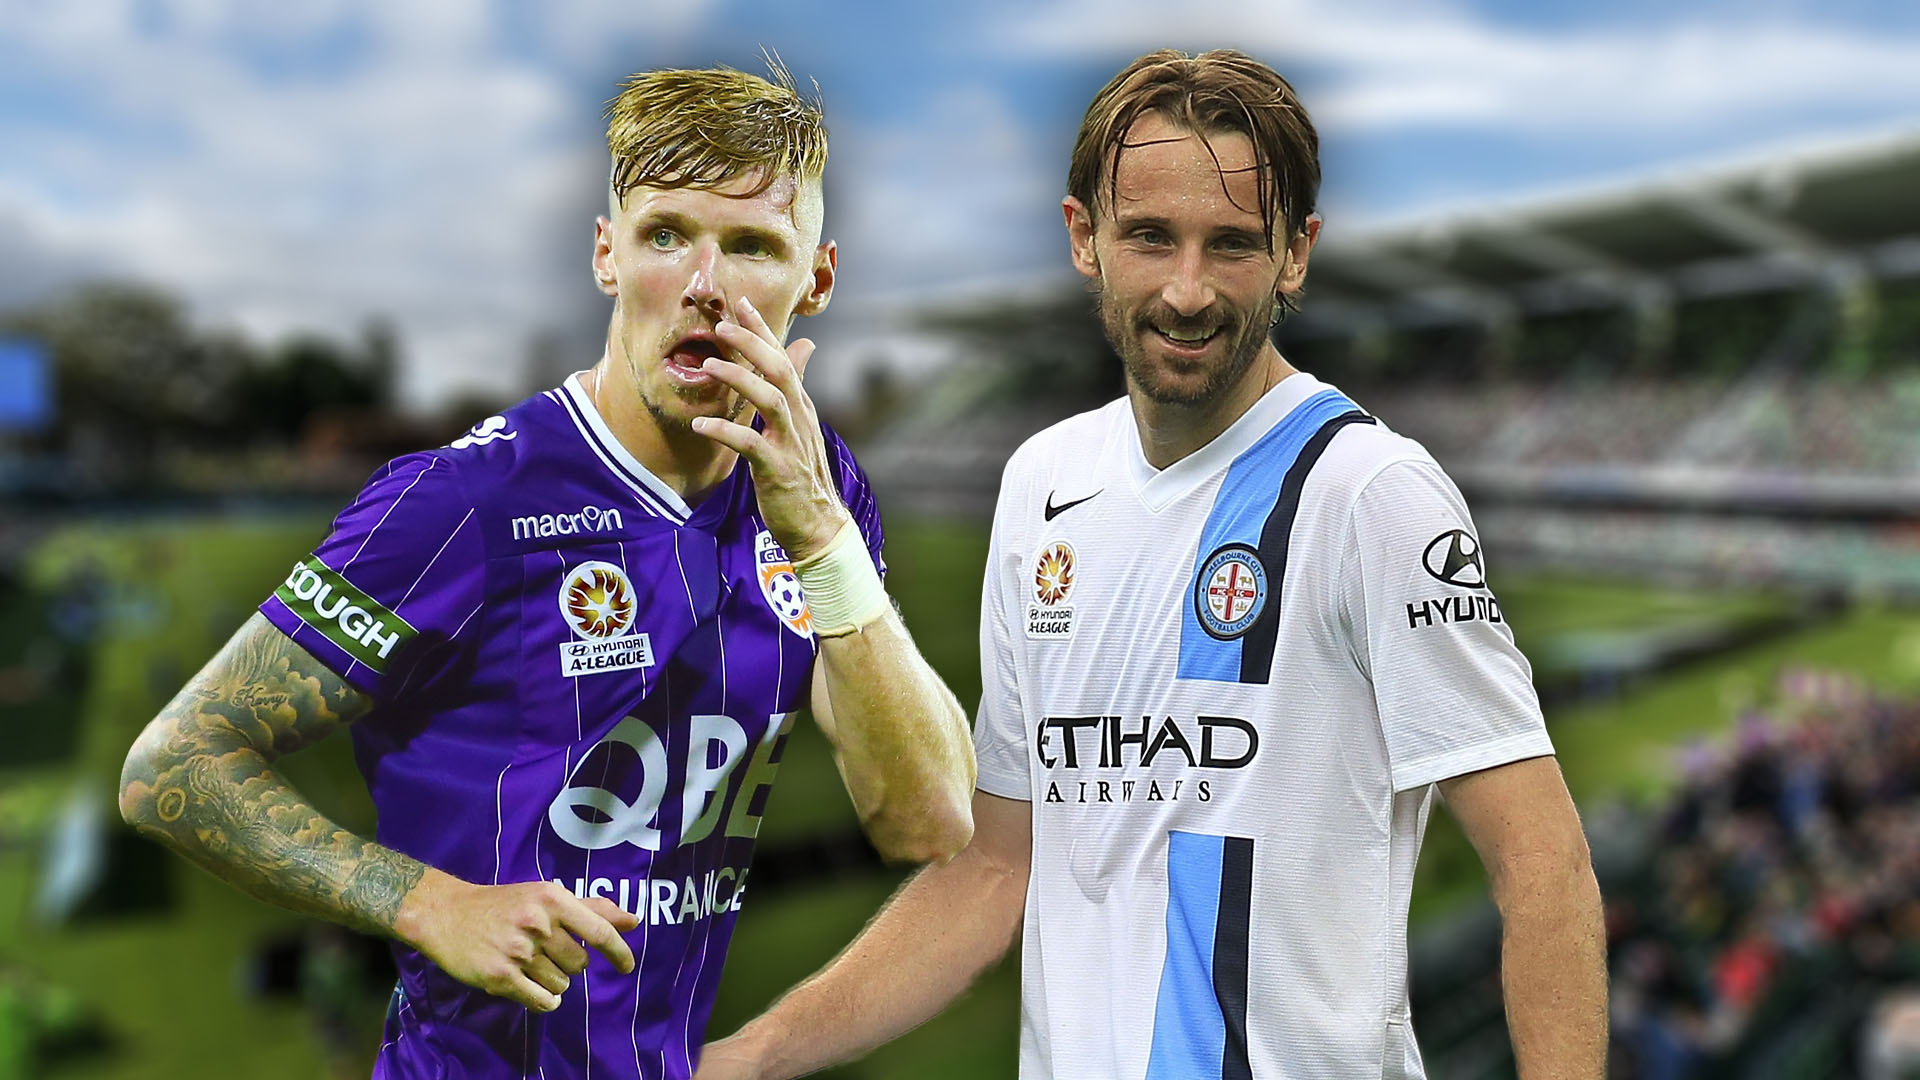 A-League. Perth Glory v Melbourne City